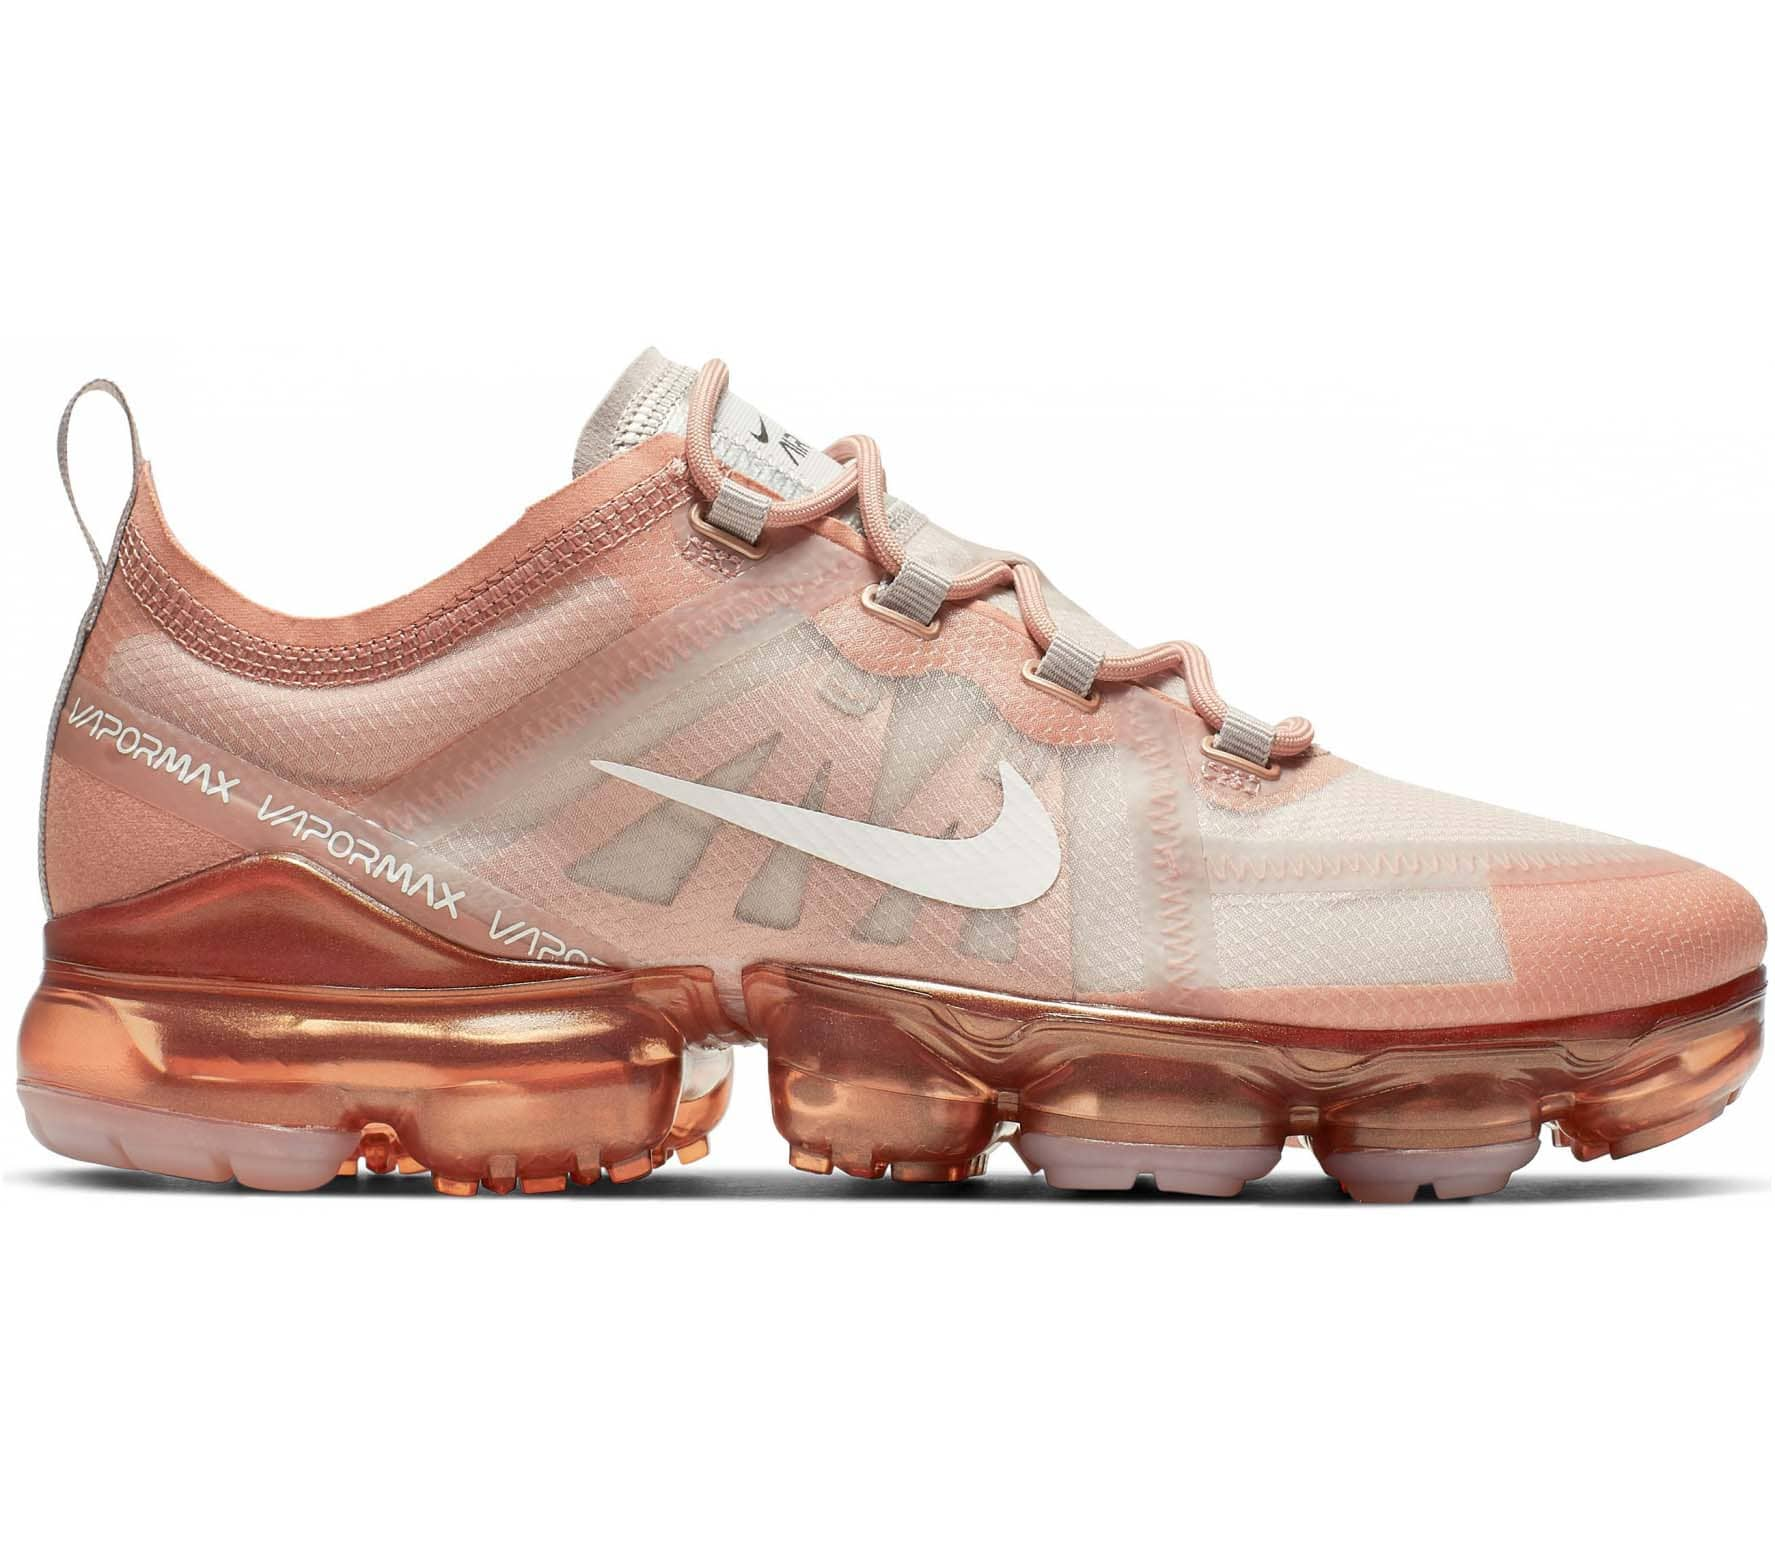 100% quality excellent quality quite nice Air Vapormax 2019 Damen Sneaker